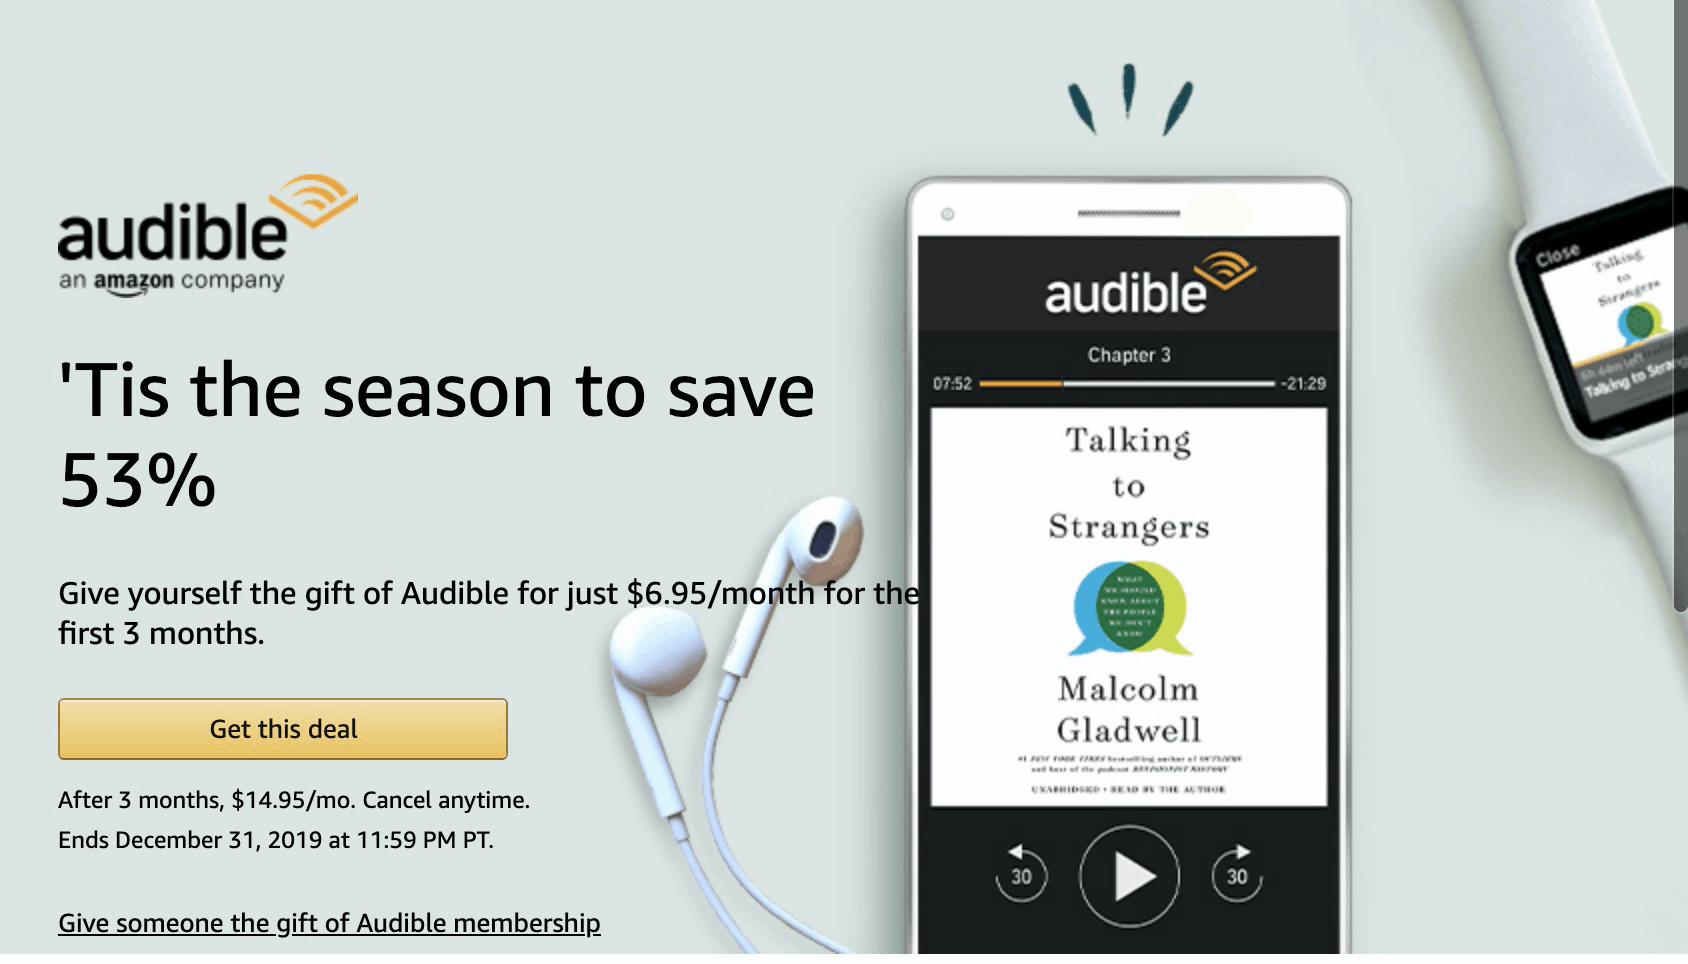 Audible Cyber Monday Deal: $6.95 a Month for 3 Months or 1 Month FREE!